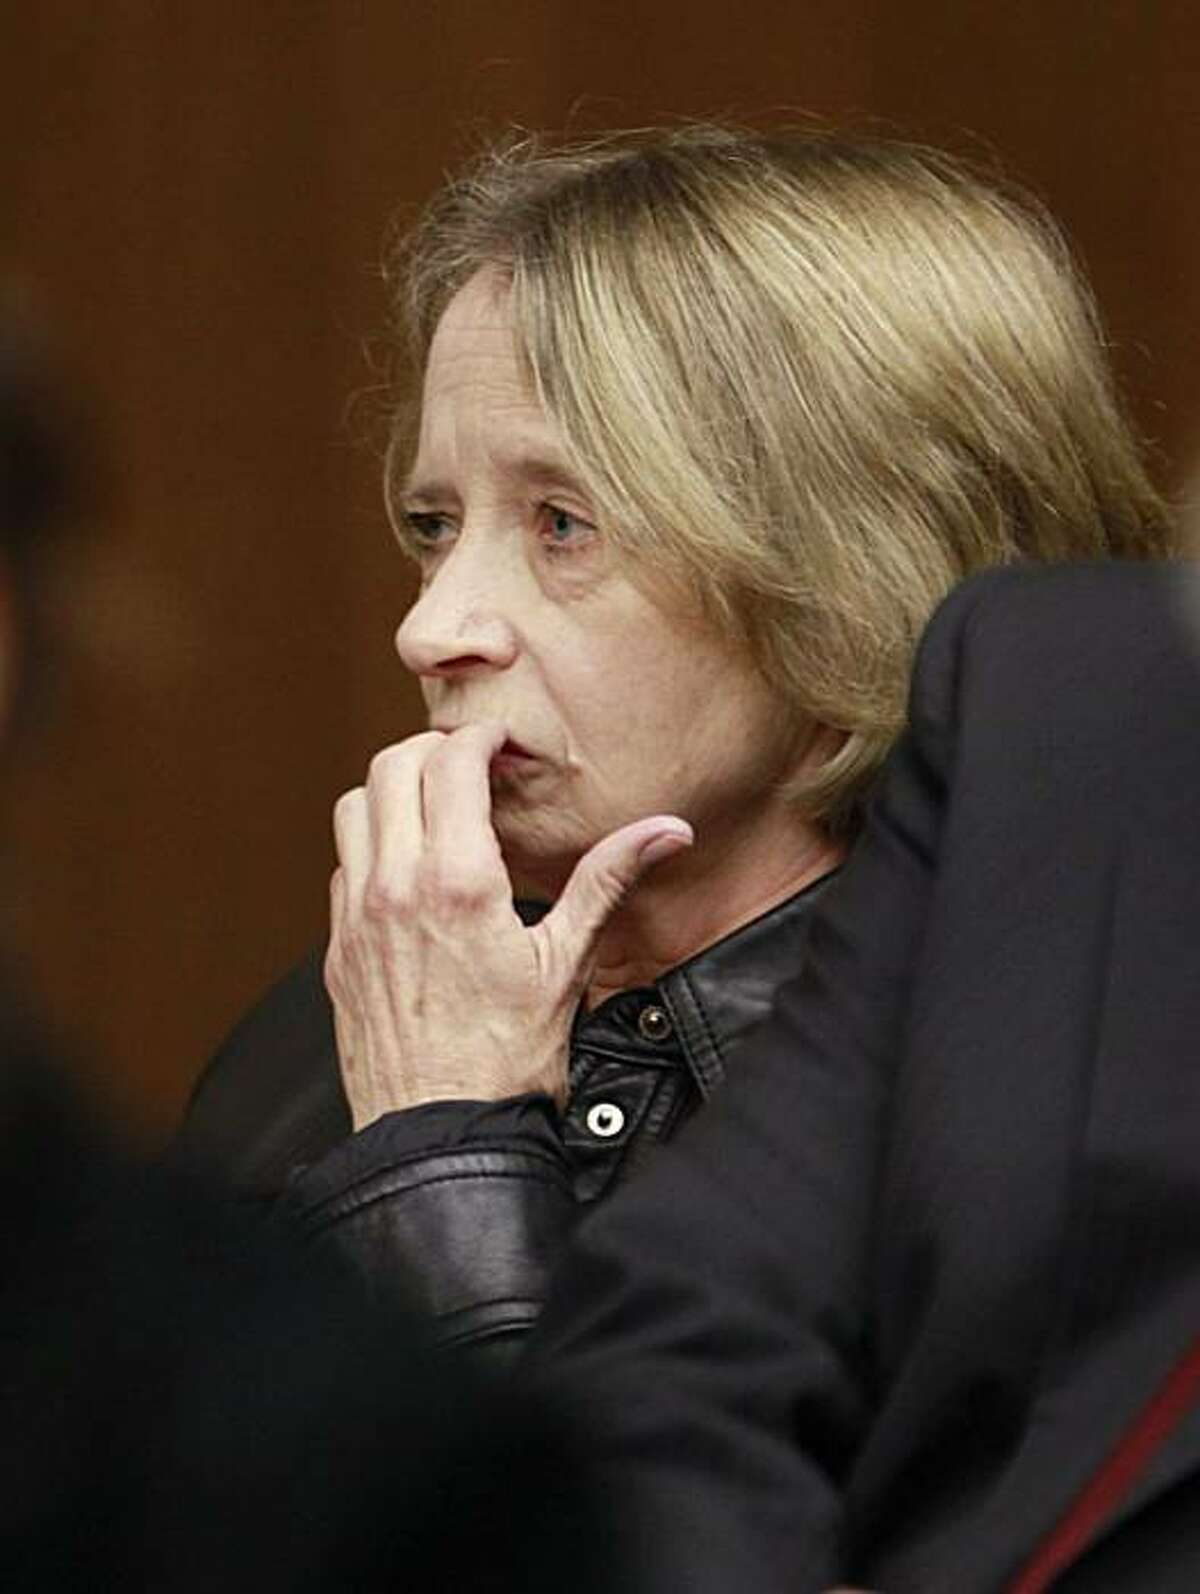 Former longtime San Francisco lab technician Deborah Madden appears for her arraignment for drug possession in a South San Francisco, Calif., courtroom, Monday, April 5, 2010. The San Francisco police crime lab was shut March 9, 2010 amid allegations in December that Madden stole cocaine evidence. Madden was in court on Monday on an unrelated charge to the lab scandal. The district attorney's office has already thrown out or not charged 550 cases because of possible evidence tampering, and is reviewing about 1,400 more for possible dismissal.